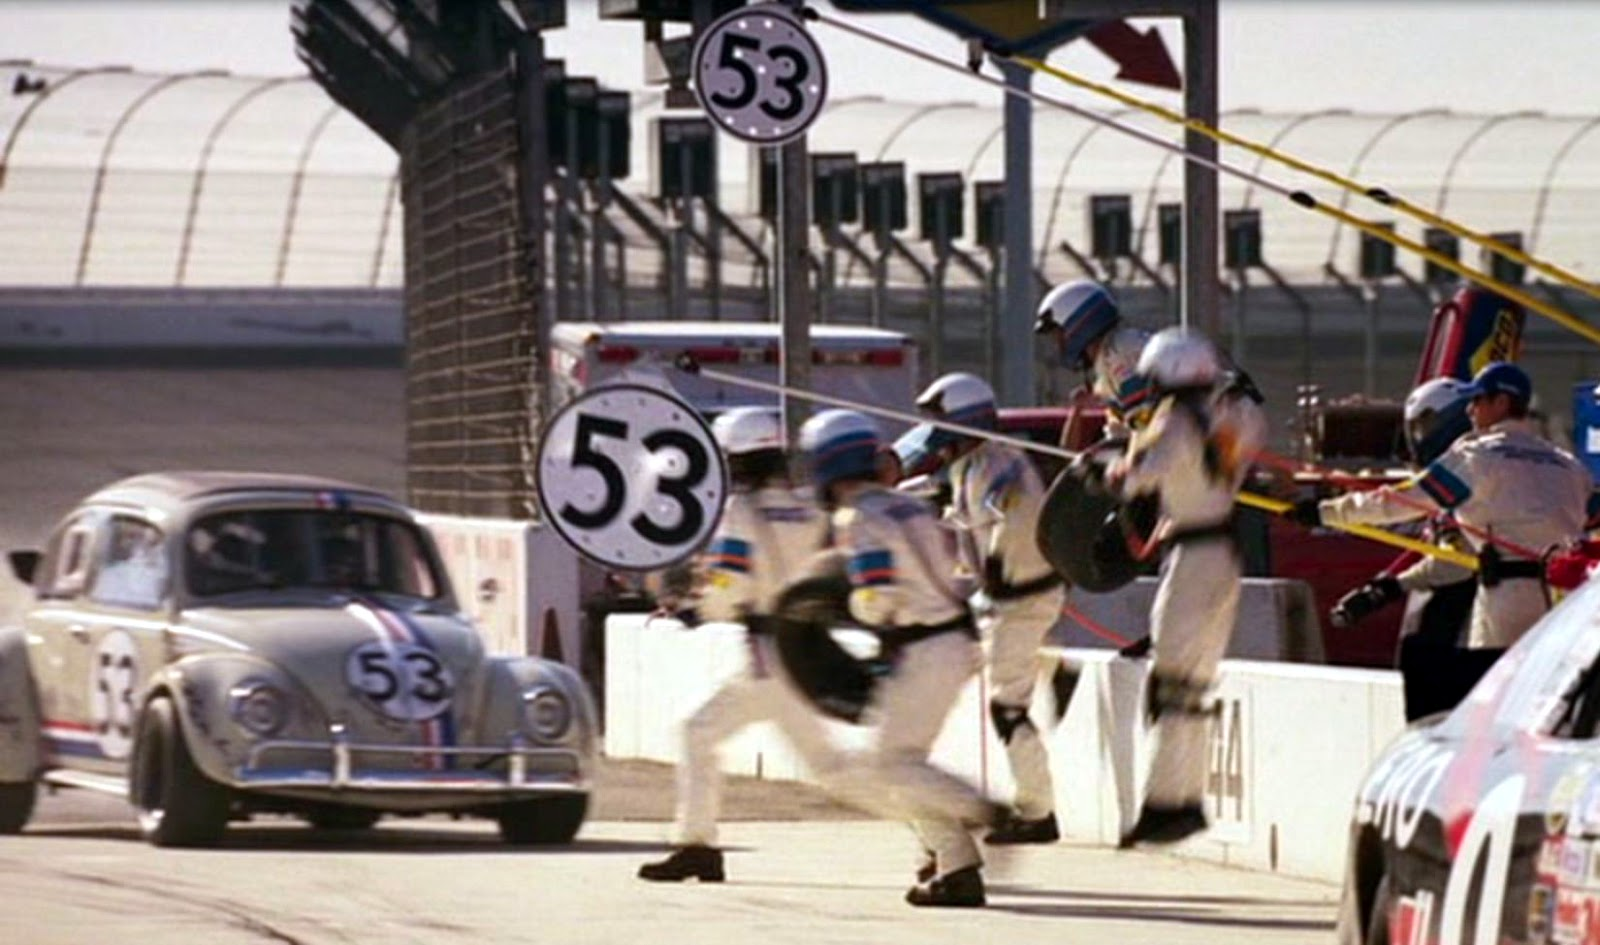 Just A Car Guy Herbie Fully Loaded Another Fun Movie Wiring Diagrams Of 1964 Plymouth 6 And V8 Savoy Belvedere Fury Part 2 Which Never Let You Down Reminds How Many Great Race Cars Have Been In Movies